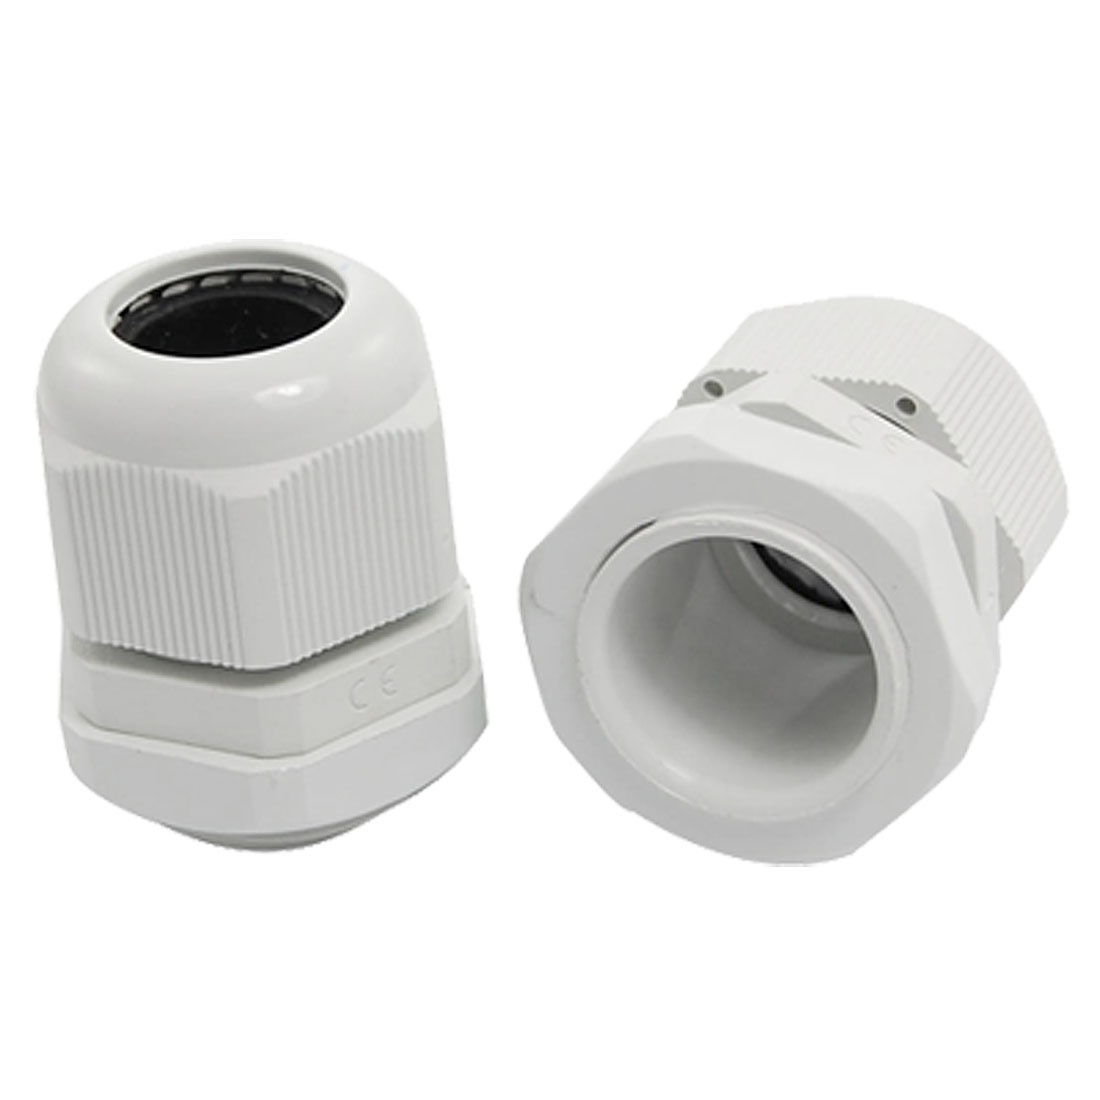 PG16 White Plastic Waterproof Cable Glands Joints 2 Pcs